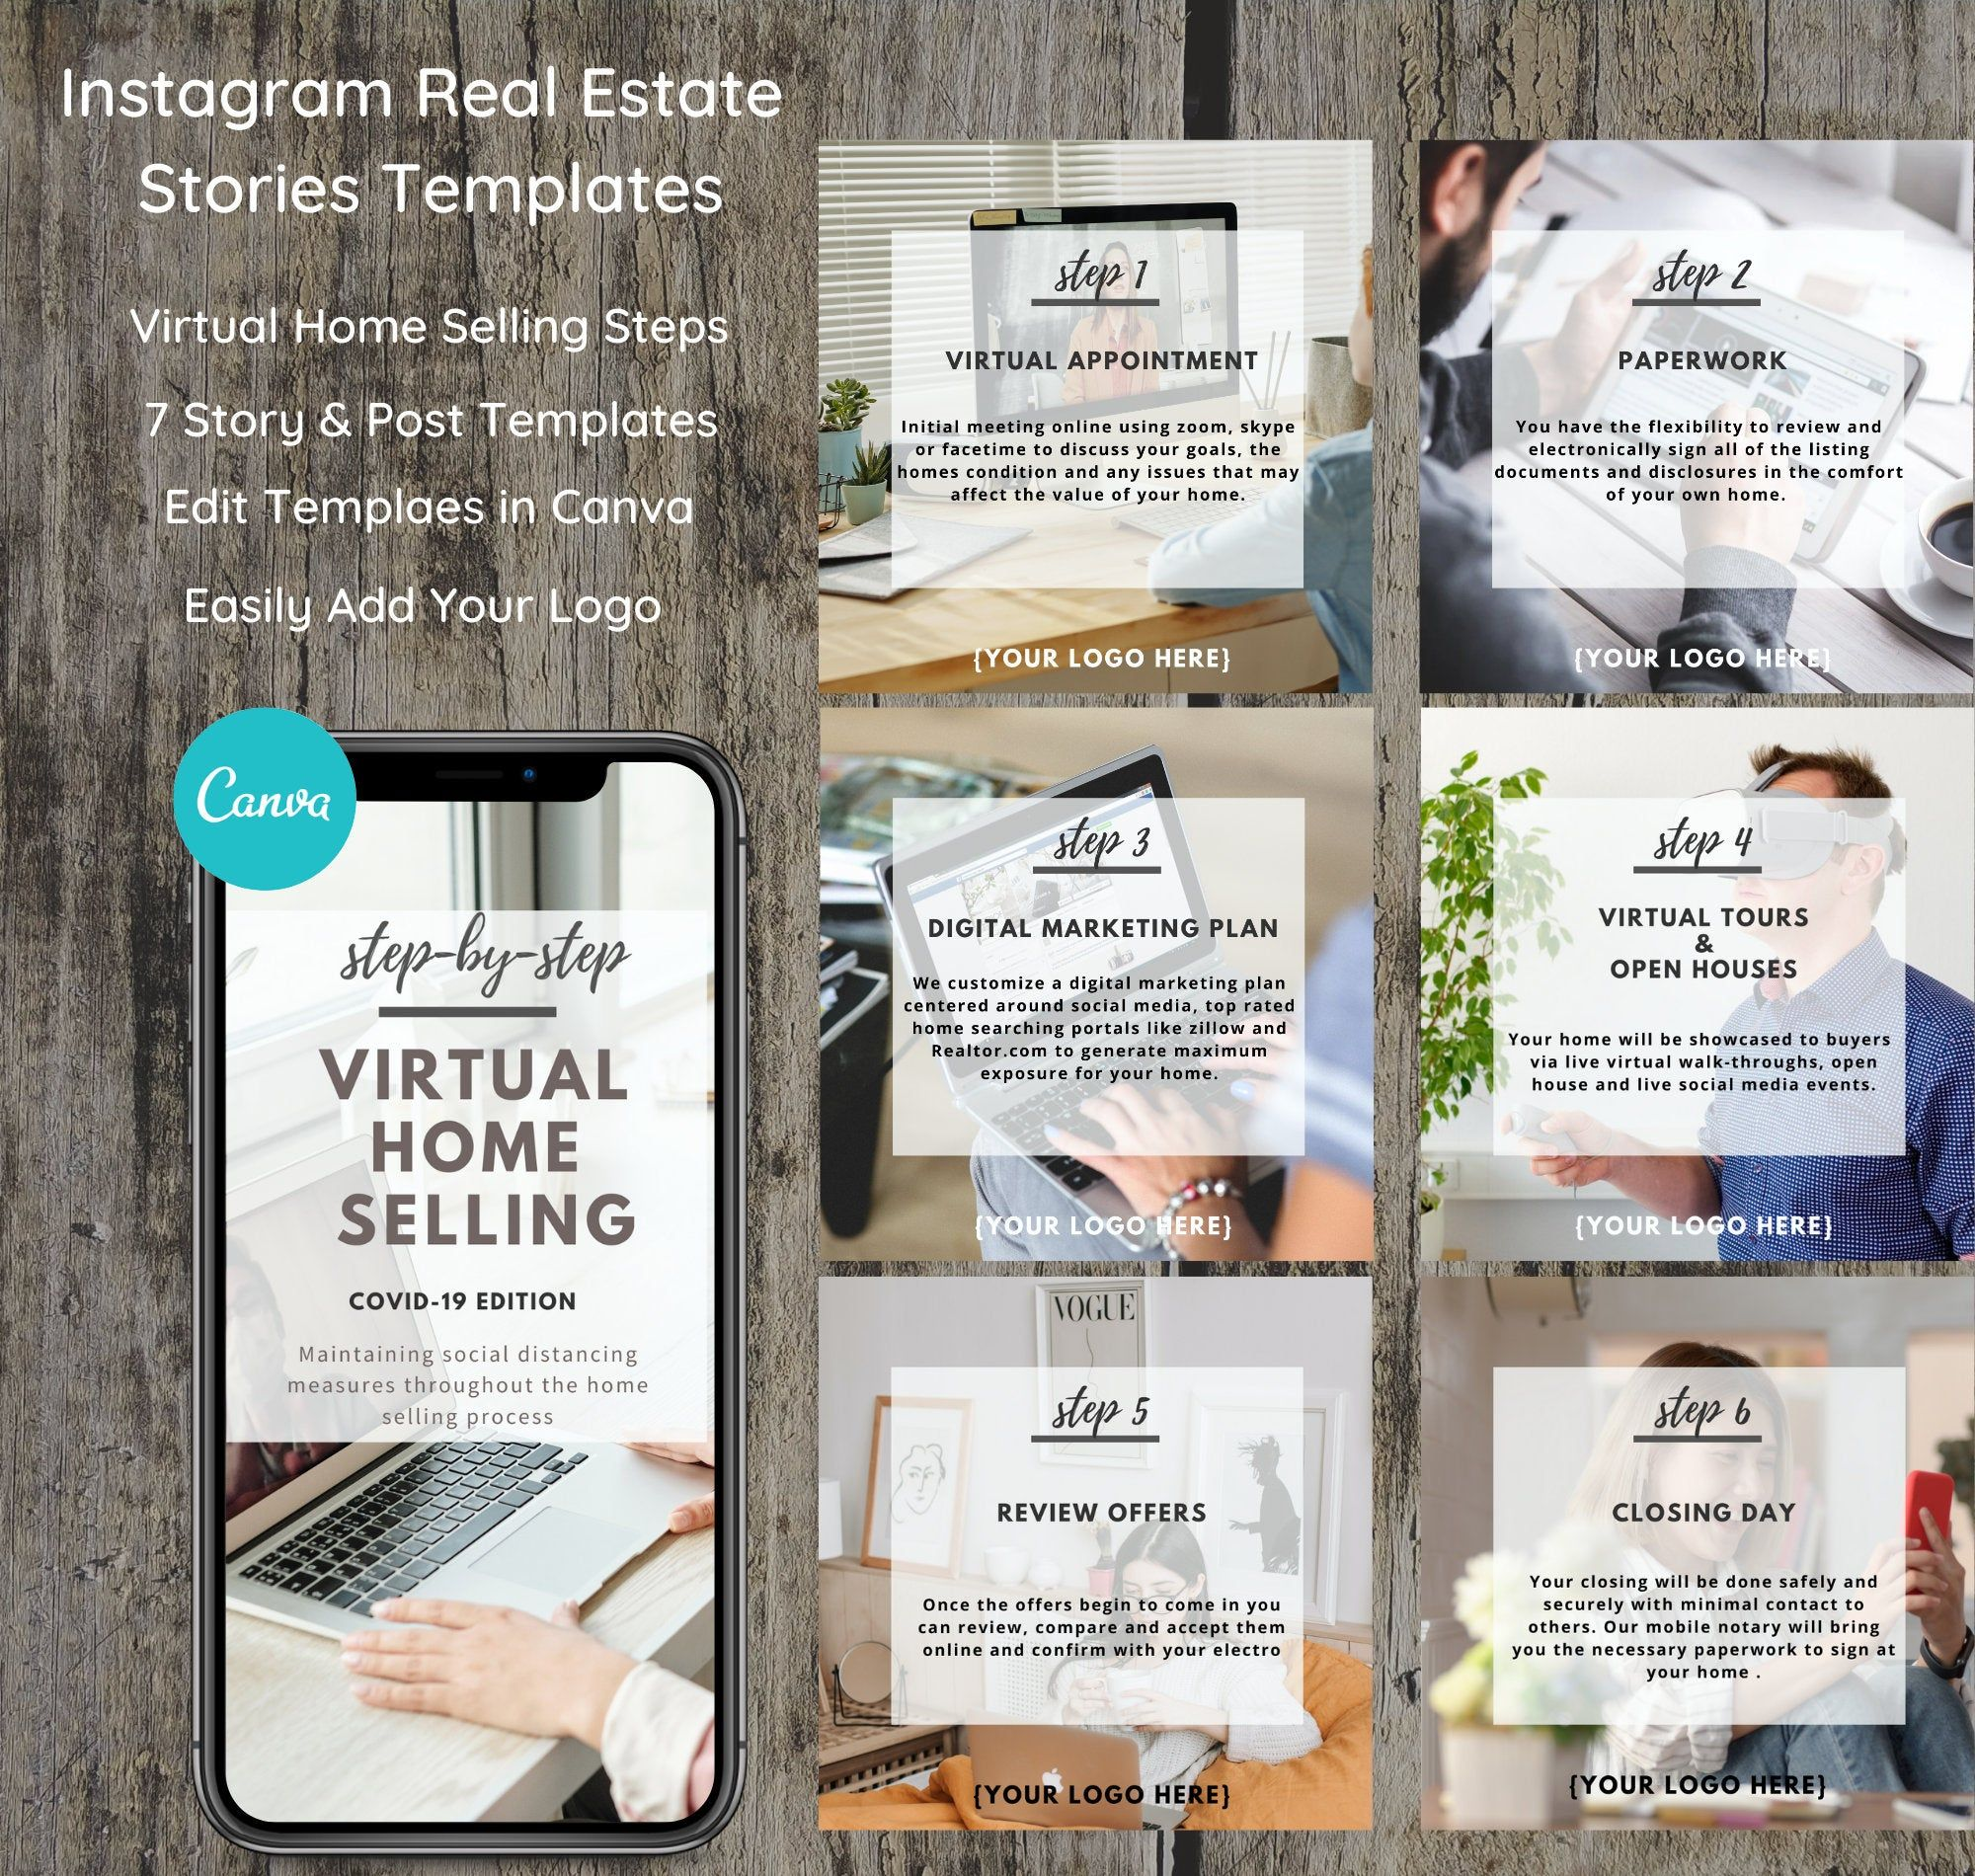 Real Estate Social Media Template - Virtual Home Selling Guide - Instagram Facebook Real Estate Story Marketing - Real Estate Bundle